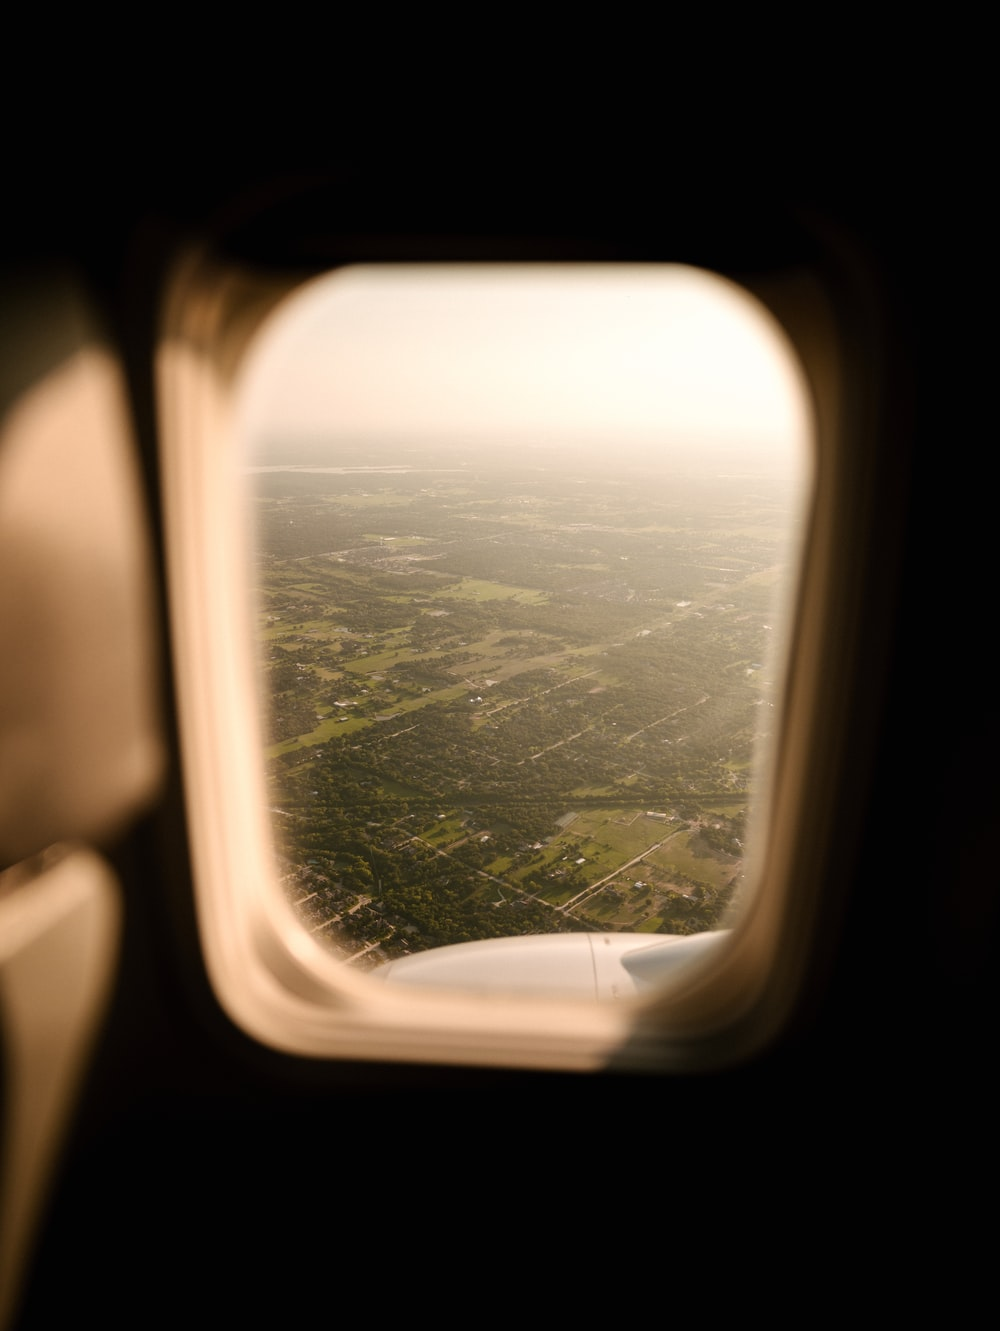 rectangular airplane window